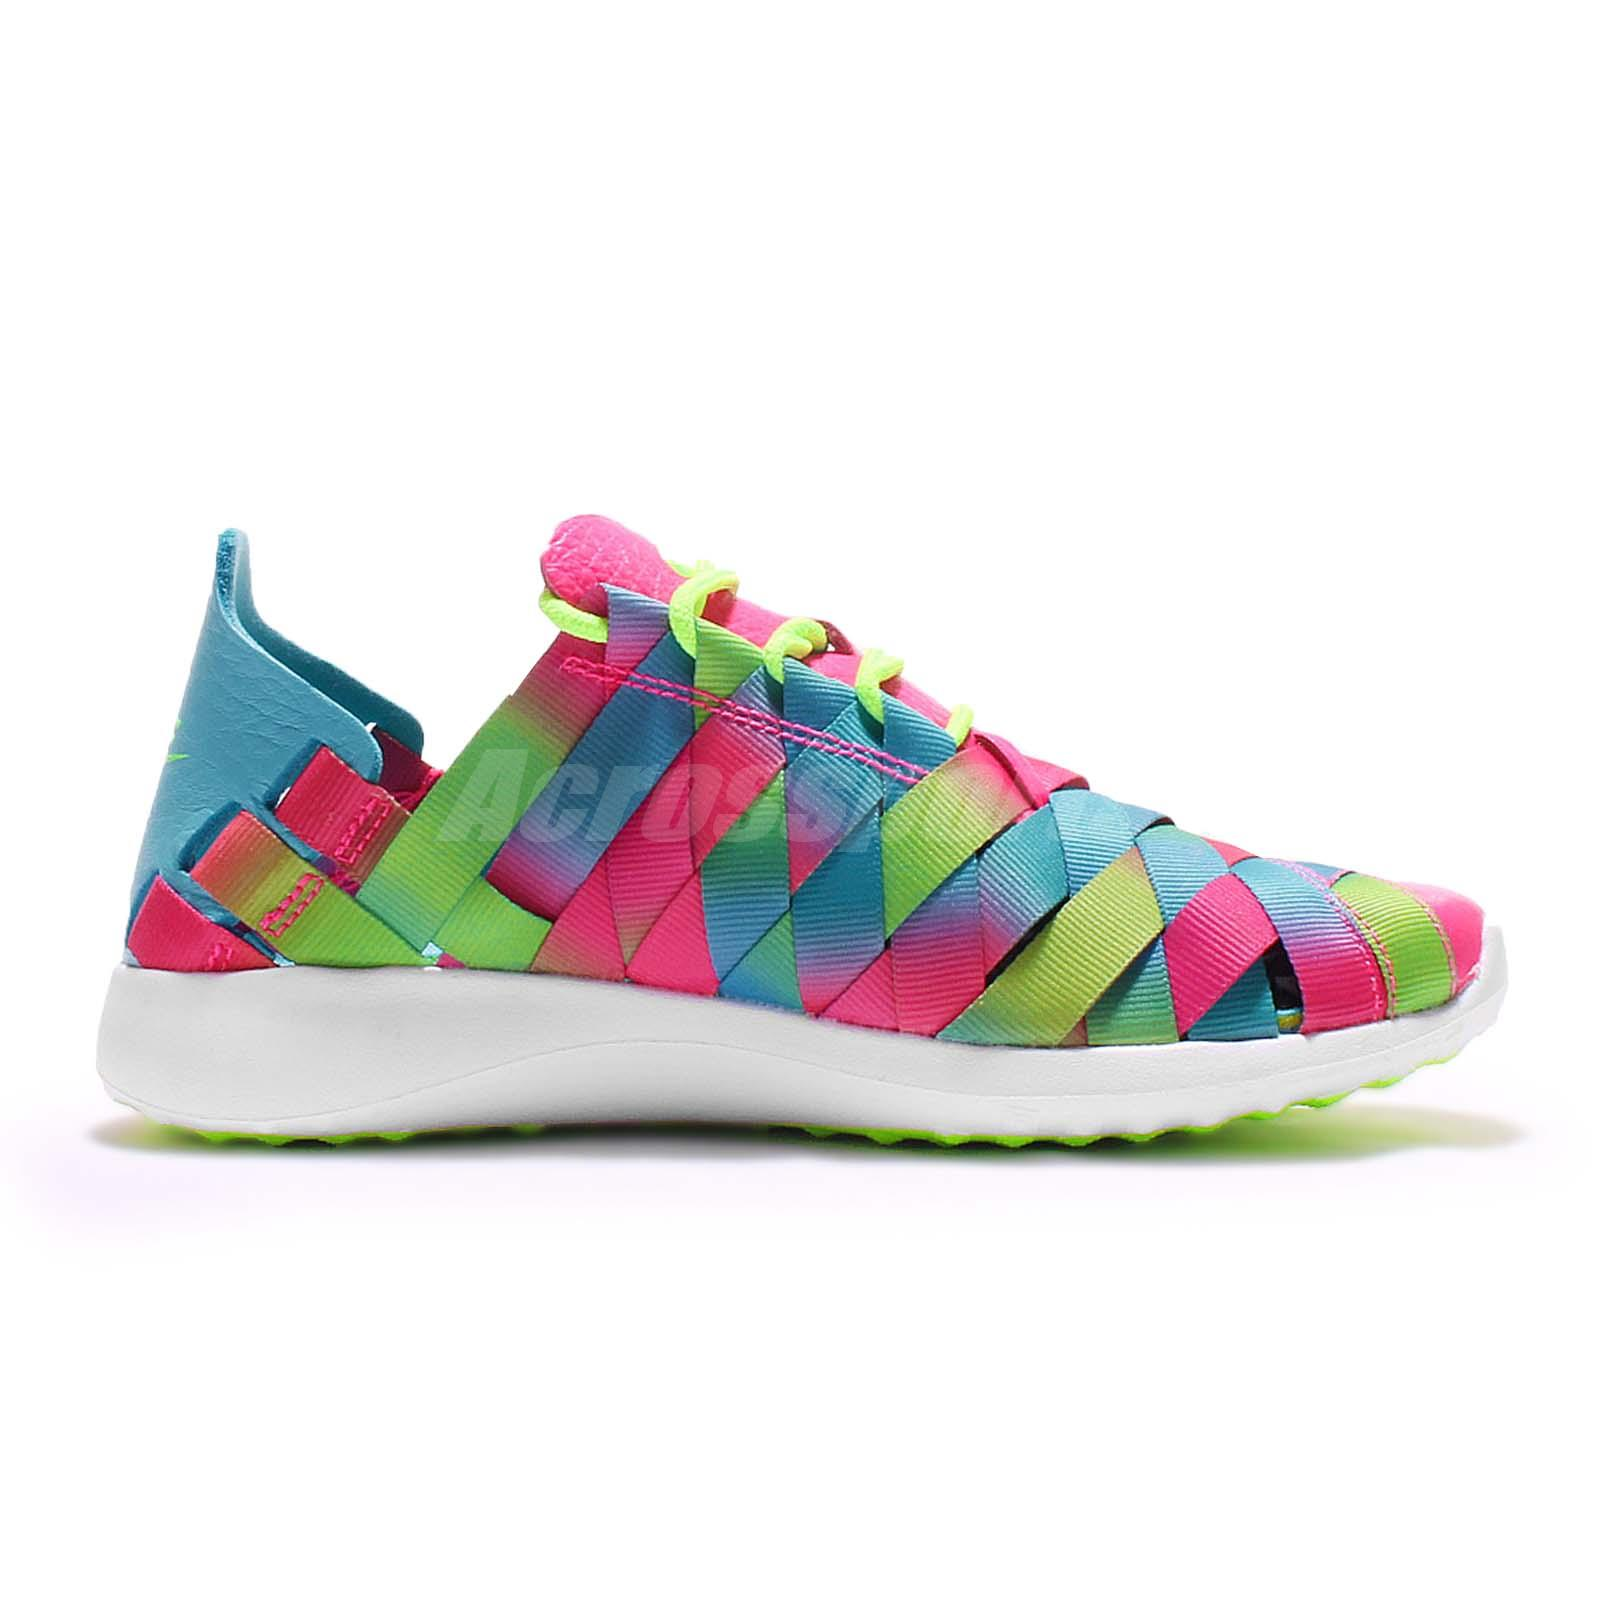 Wmns Nike Juvenate Woven PRM Premium Multi-Color Womens Shoe ... ba0f4e1291